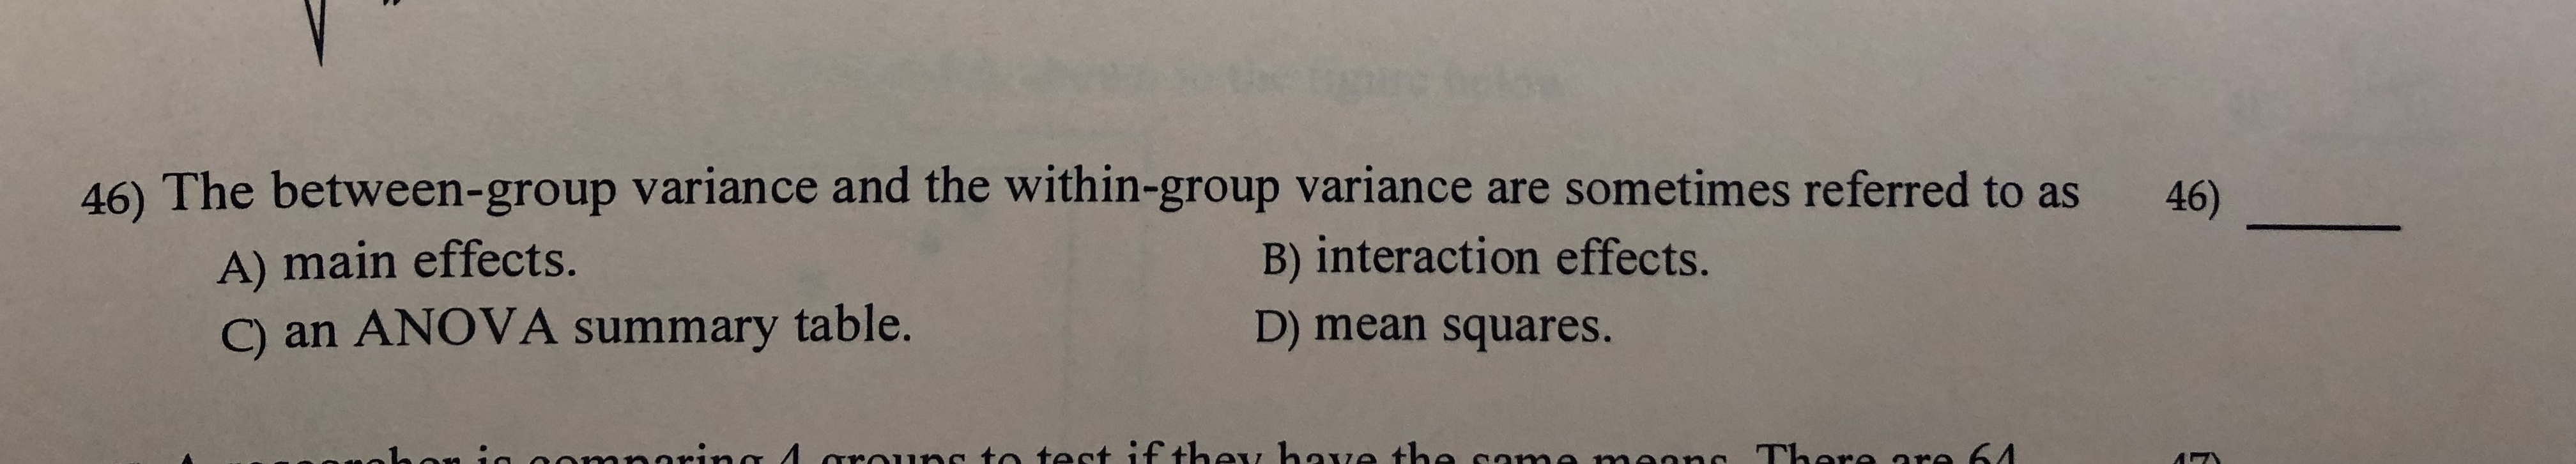 46) The between-group varian ce and the within-group variance are sometimes referred to as 46) A) main effects. C) an ANOVA summary table. B) interaction effects. D) mean squares. noring 4 arauns to tect if they hae the ca aanc There are 64 5